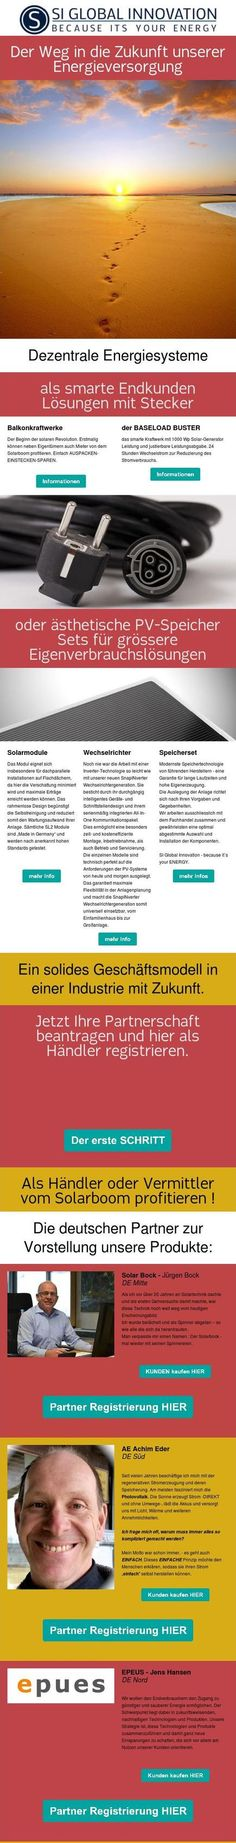 Great newsletter From SI Global Innovation http://cm.pn/13yy